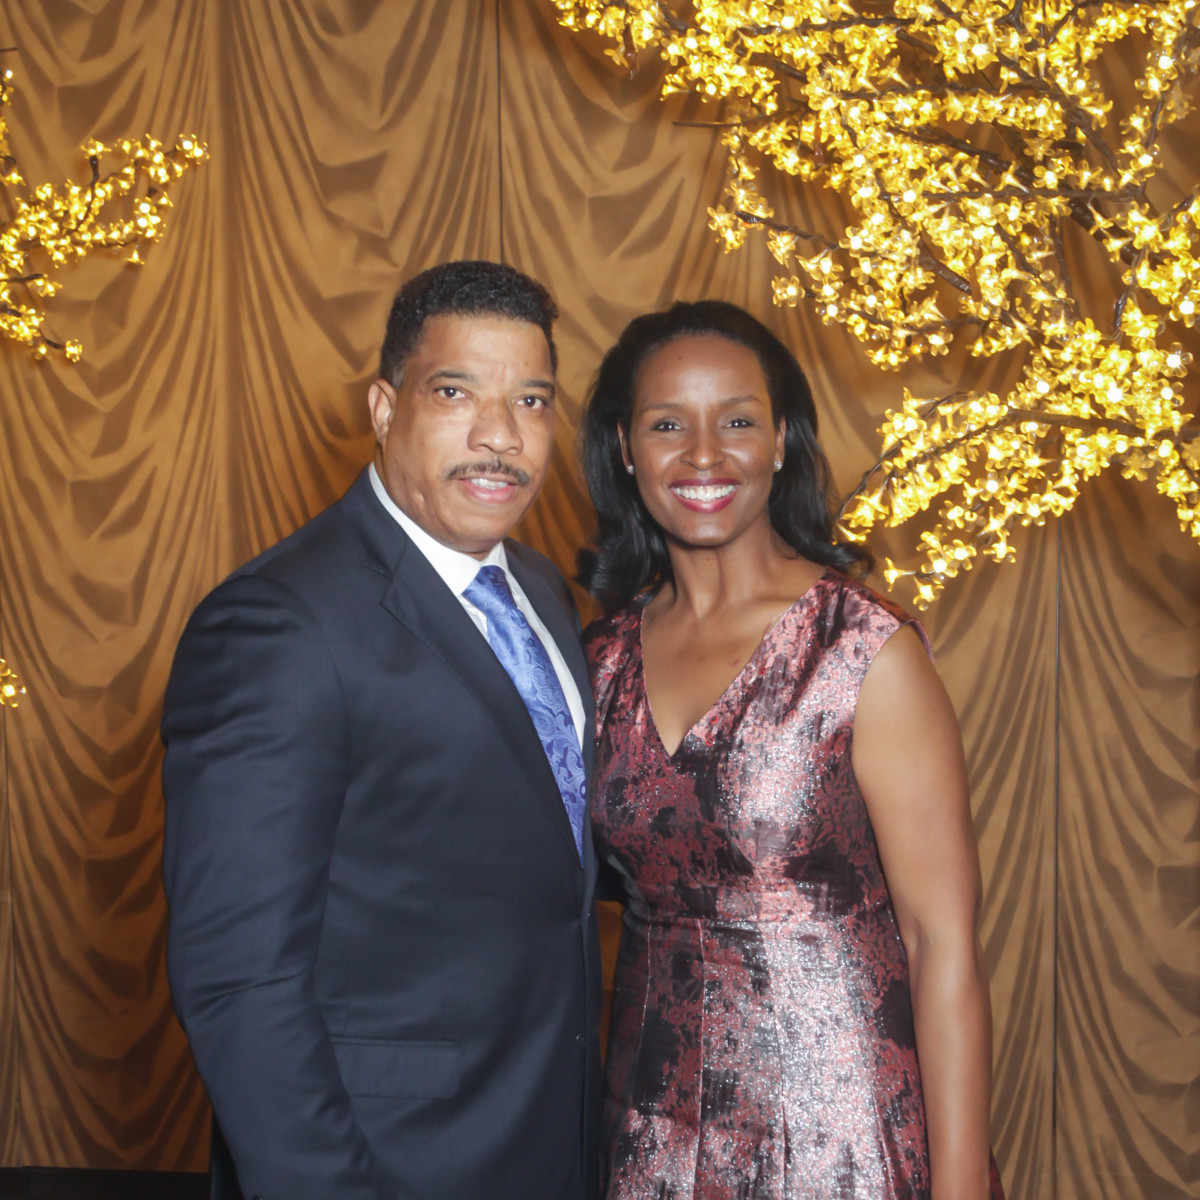 CAMAC 30th anny gala, Jan. 2016, Doug Herron, Winell Herron